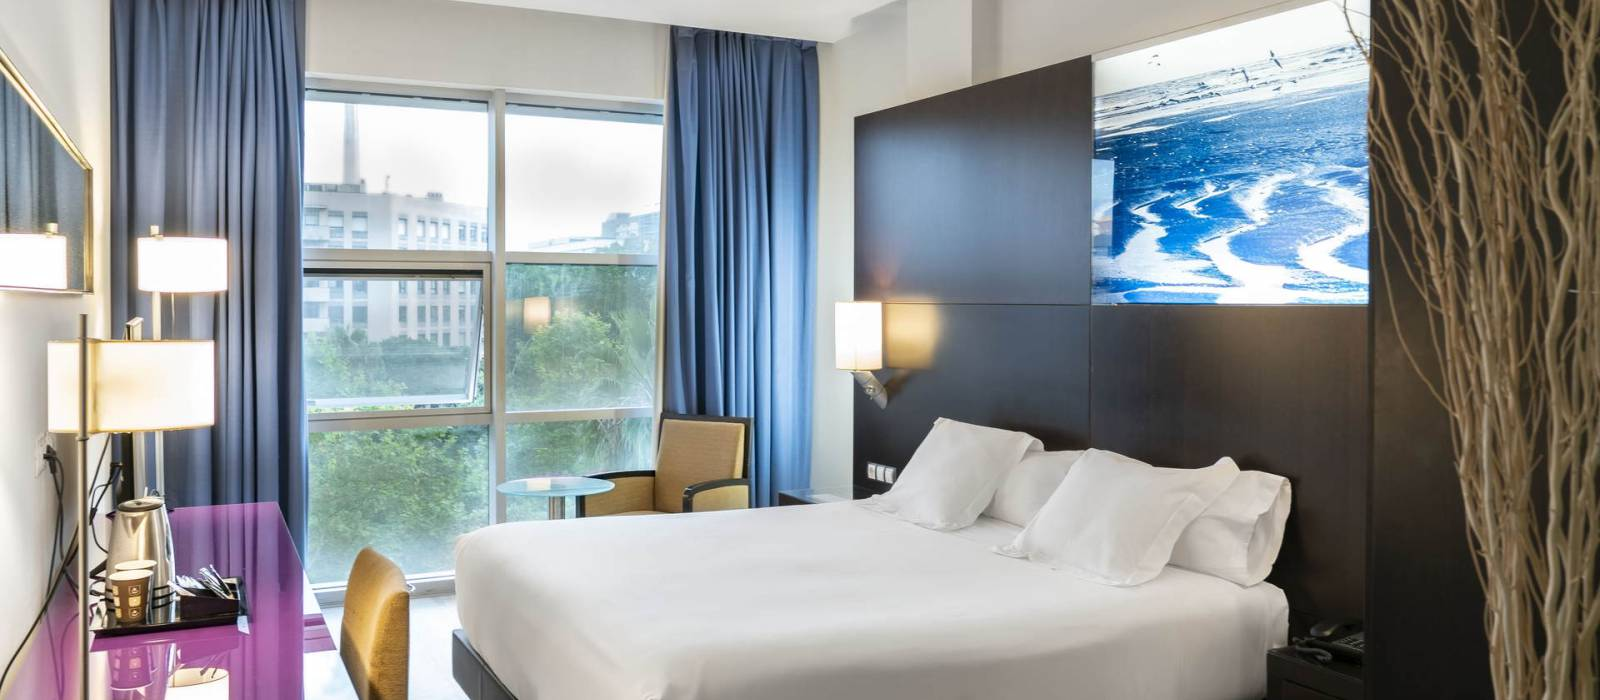 Promotions Hotel Vincci Maritimo - Book now and save -5%